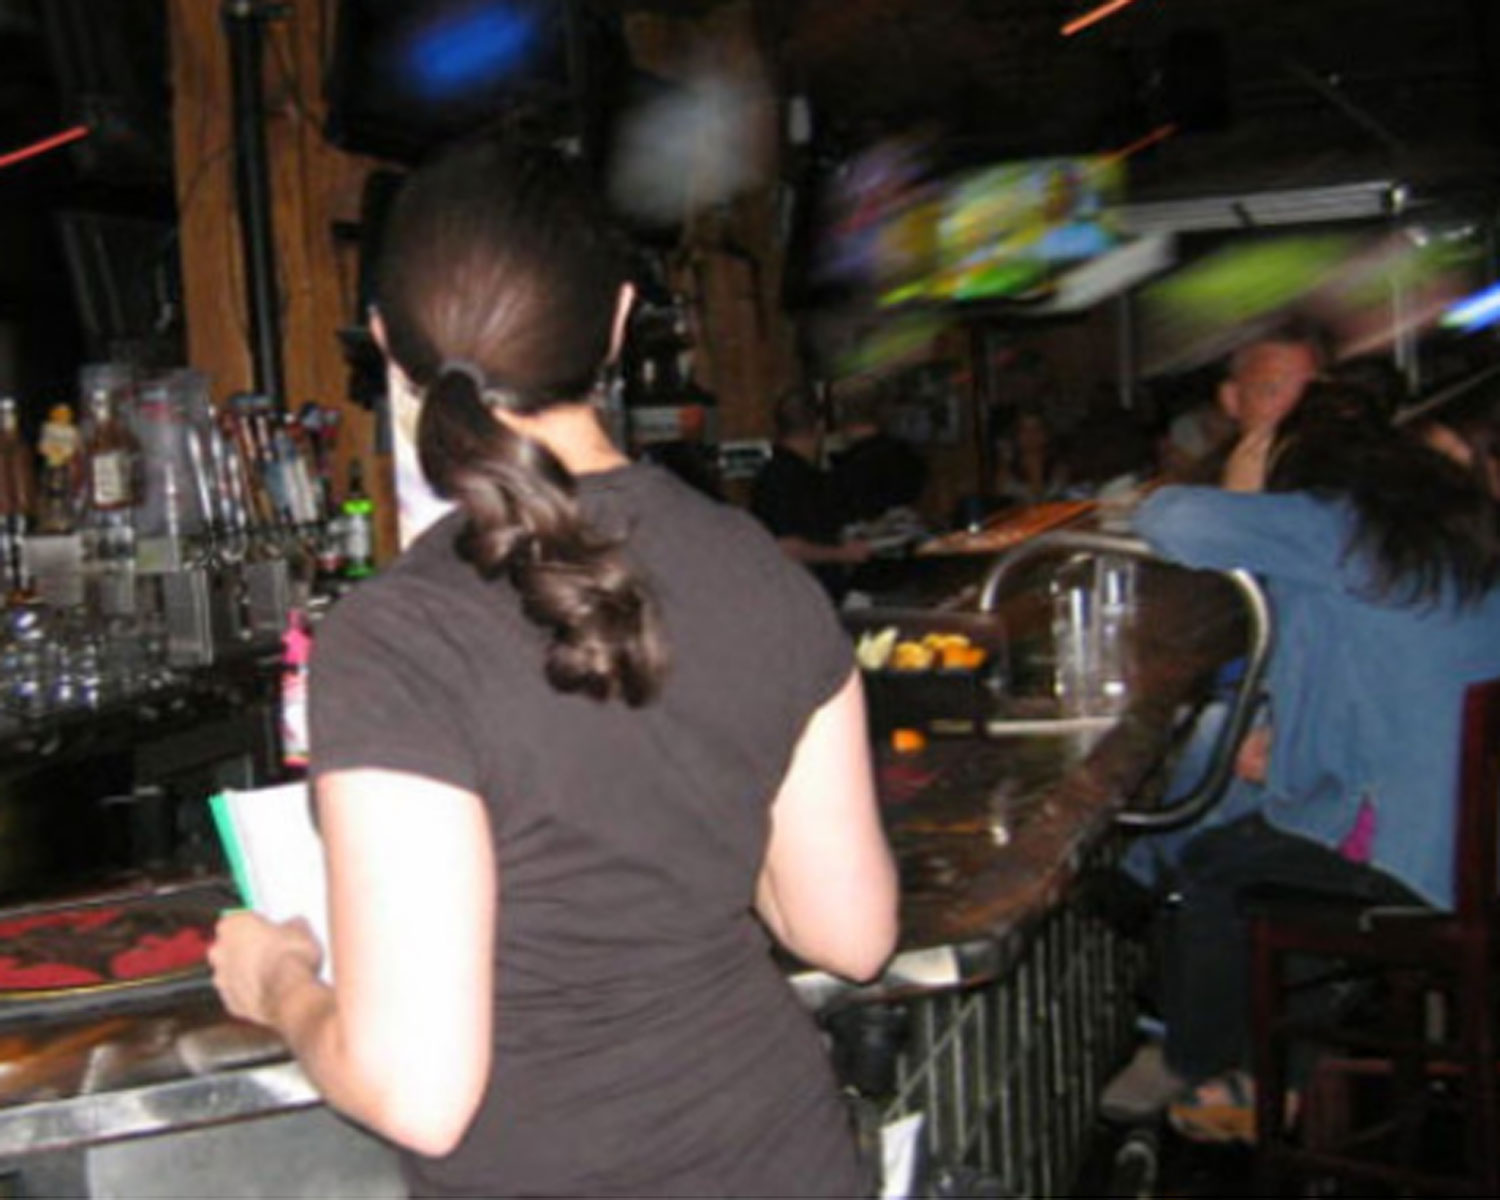 Last call for alcohol stays the same in Colorado, lawmakers